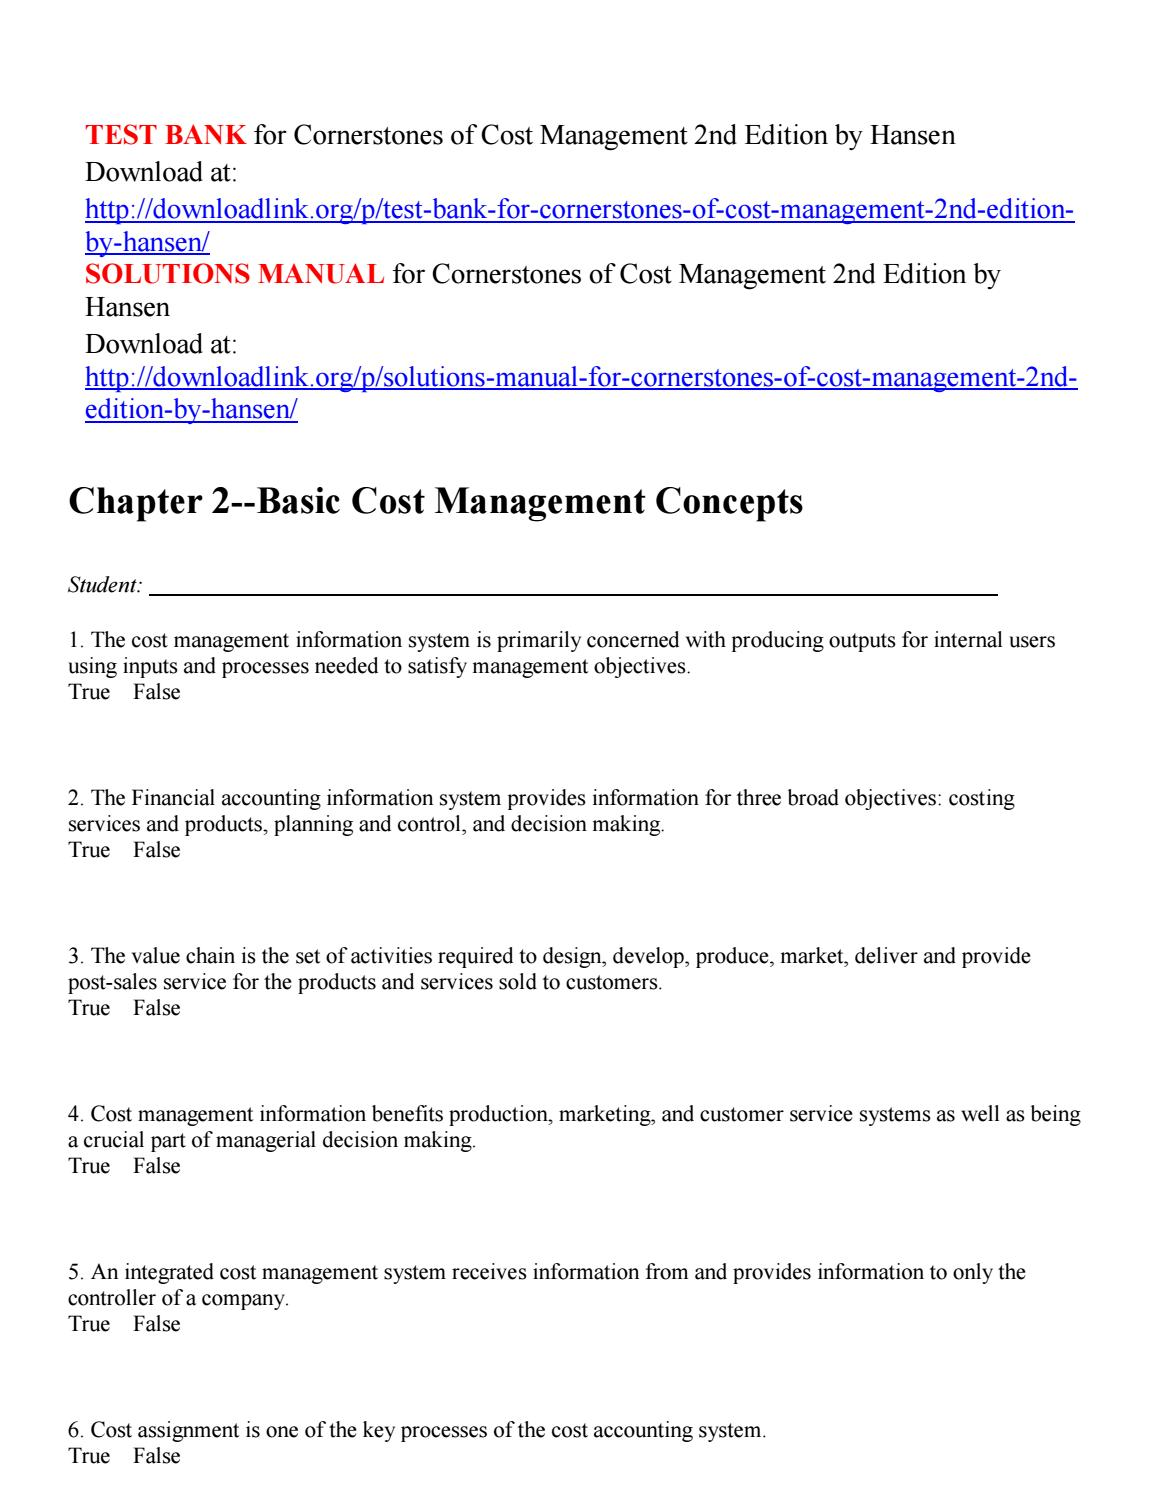 Test bank for cornerstones of cost management 2nd edition by hansen by  Kloppenborg - issuu